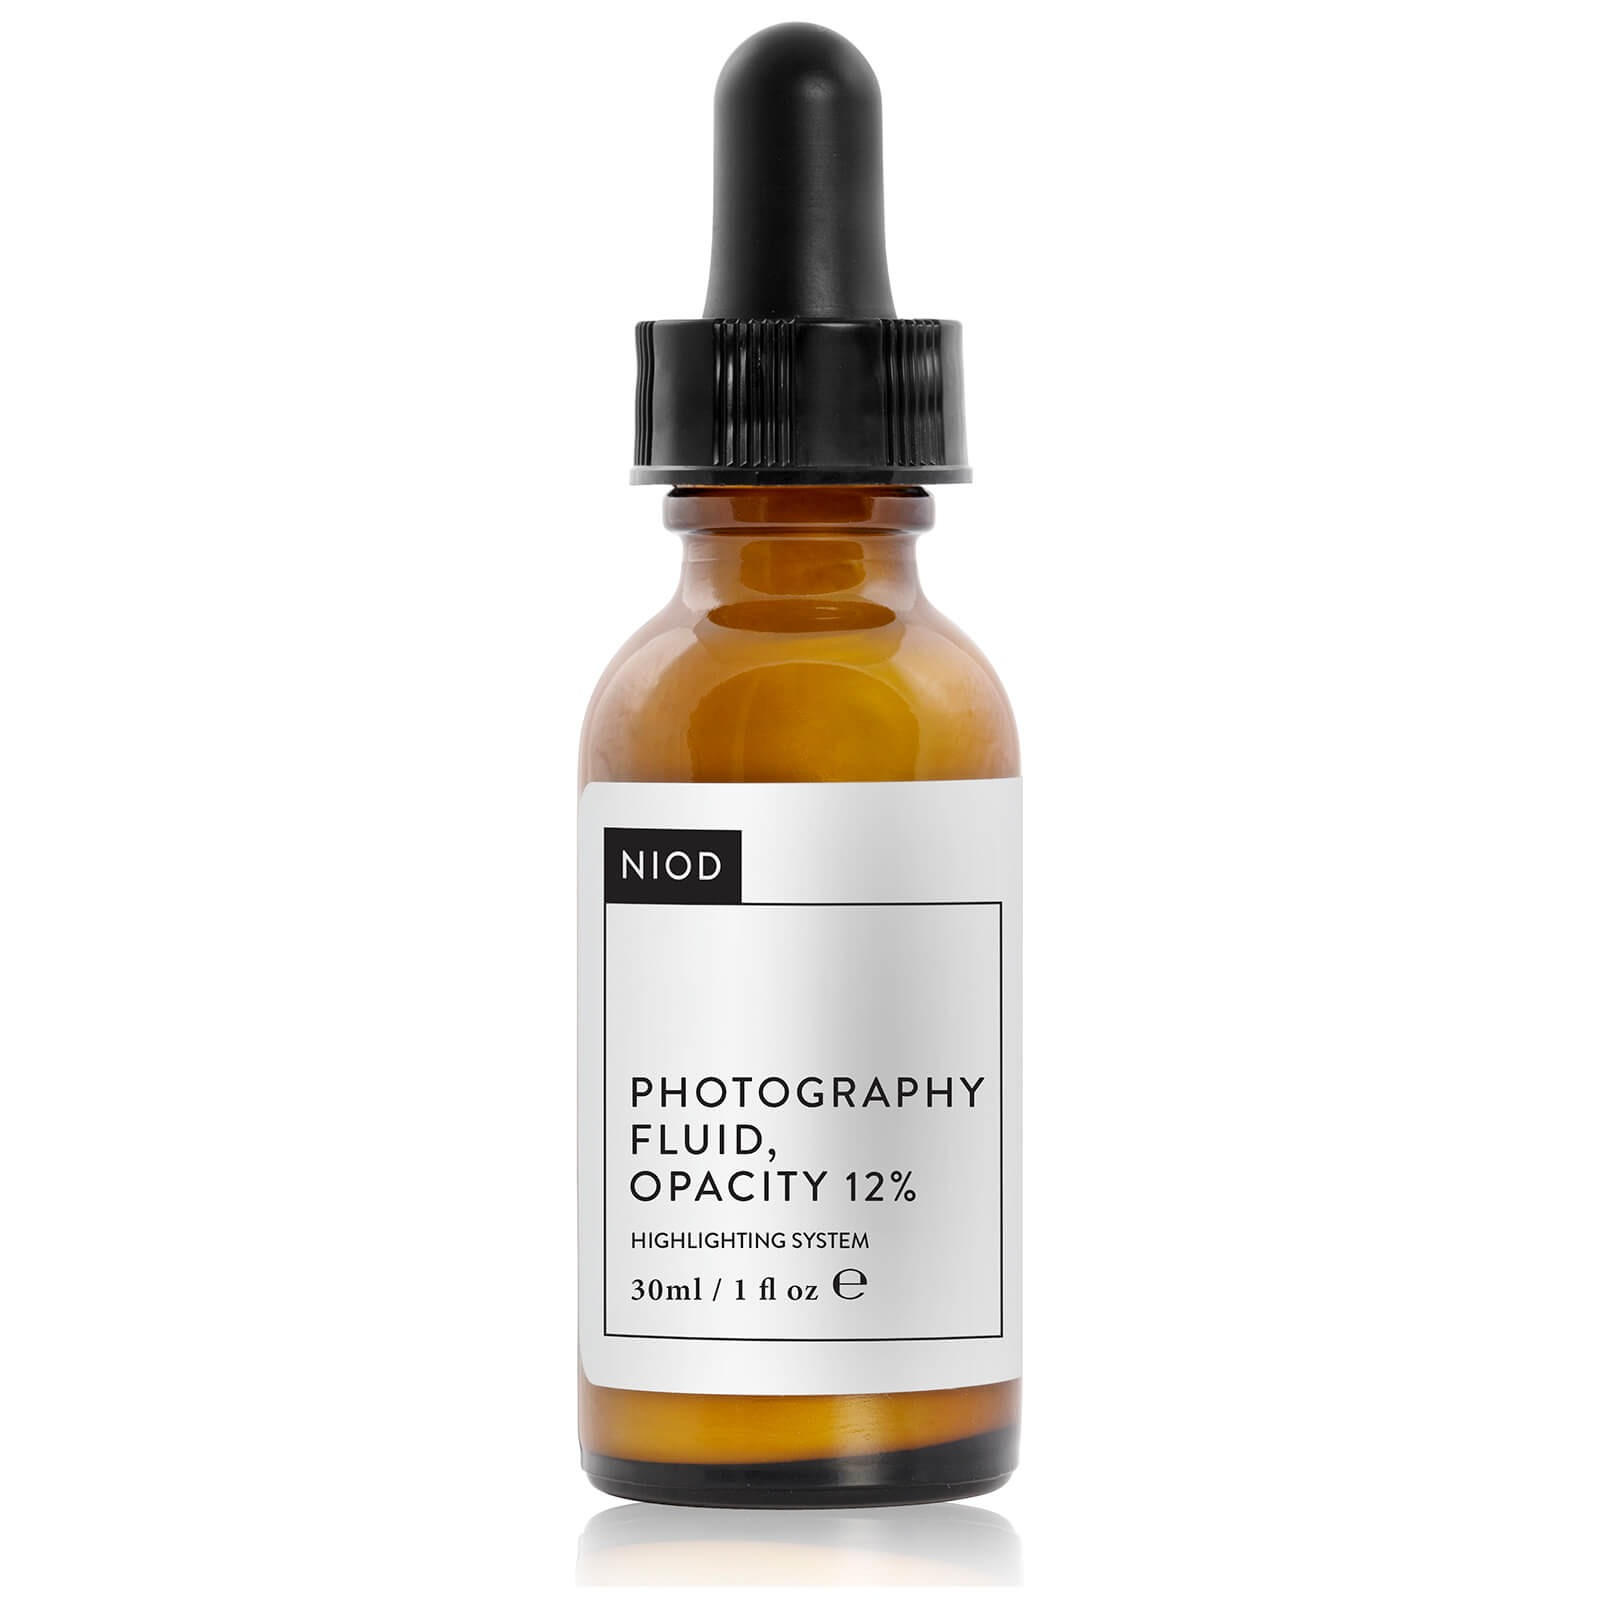 NIOD Photography Fluid, Colorless, Opacity 12% (30ml)